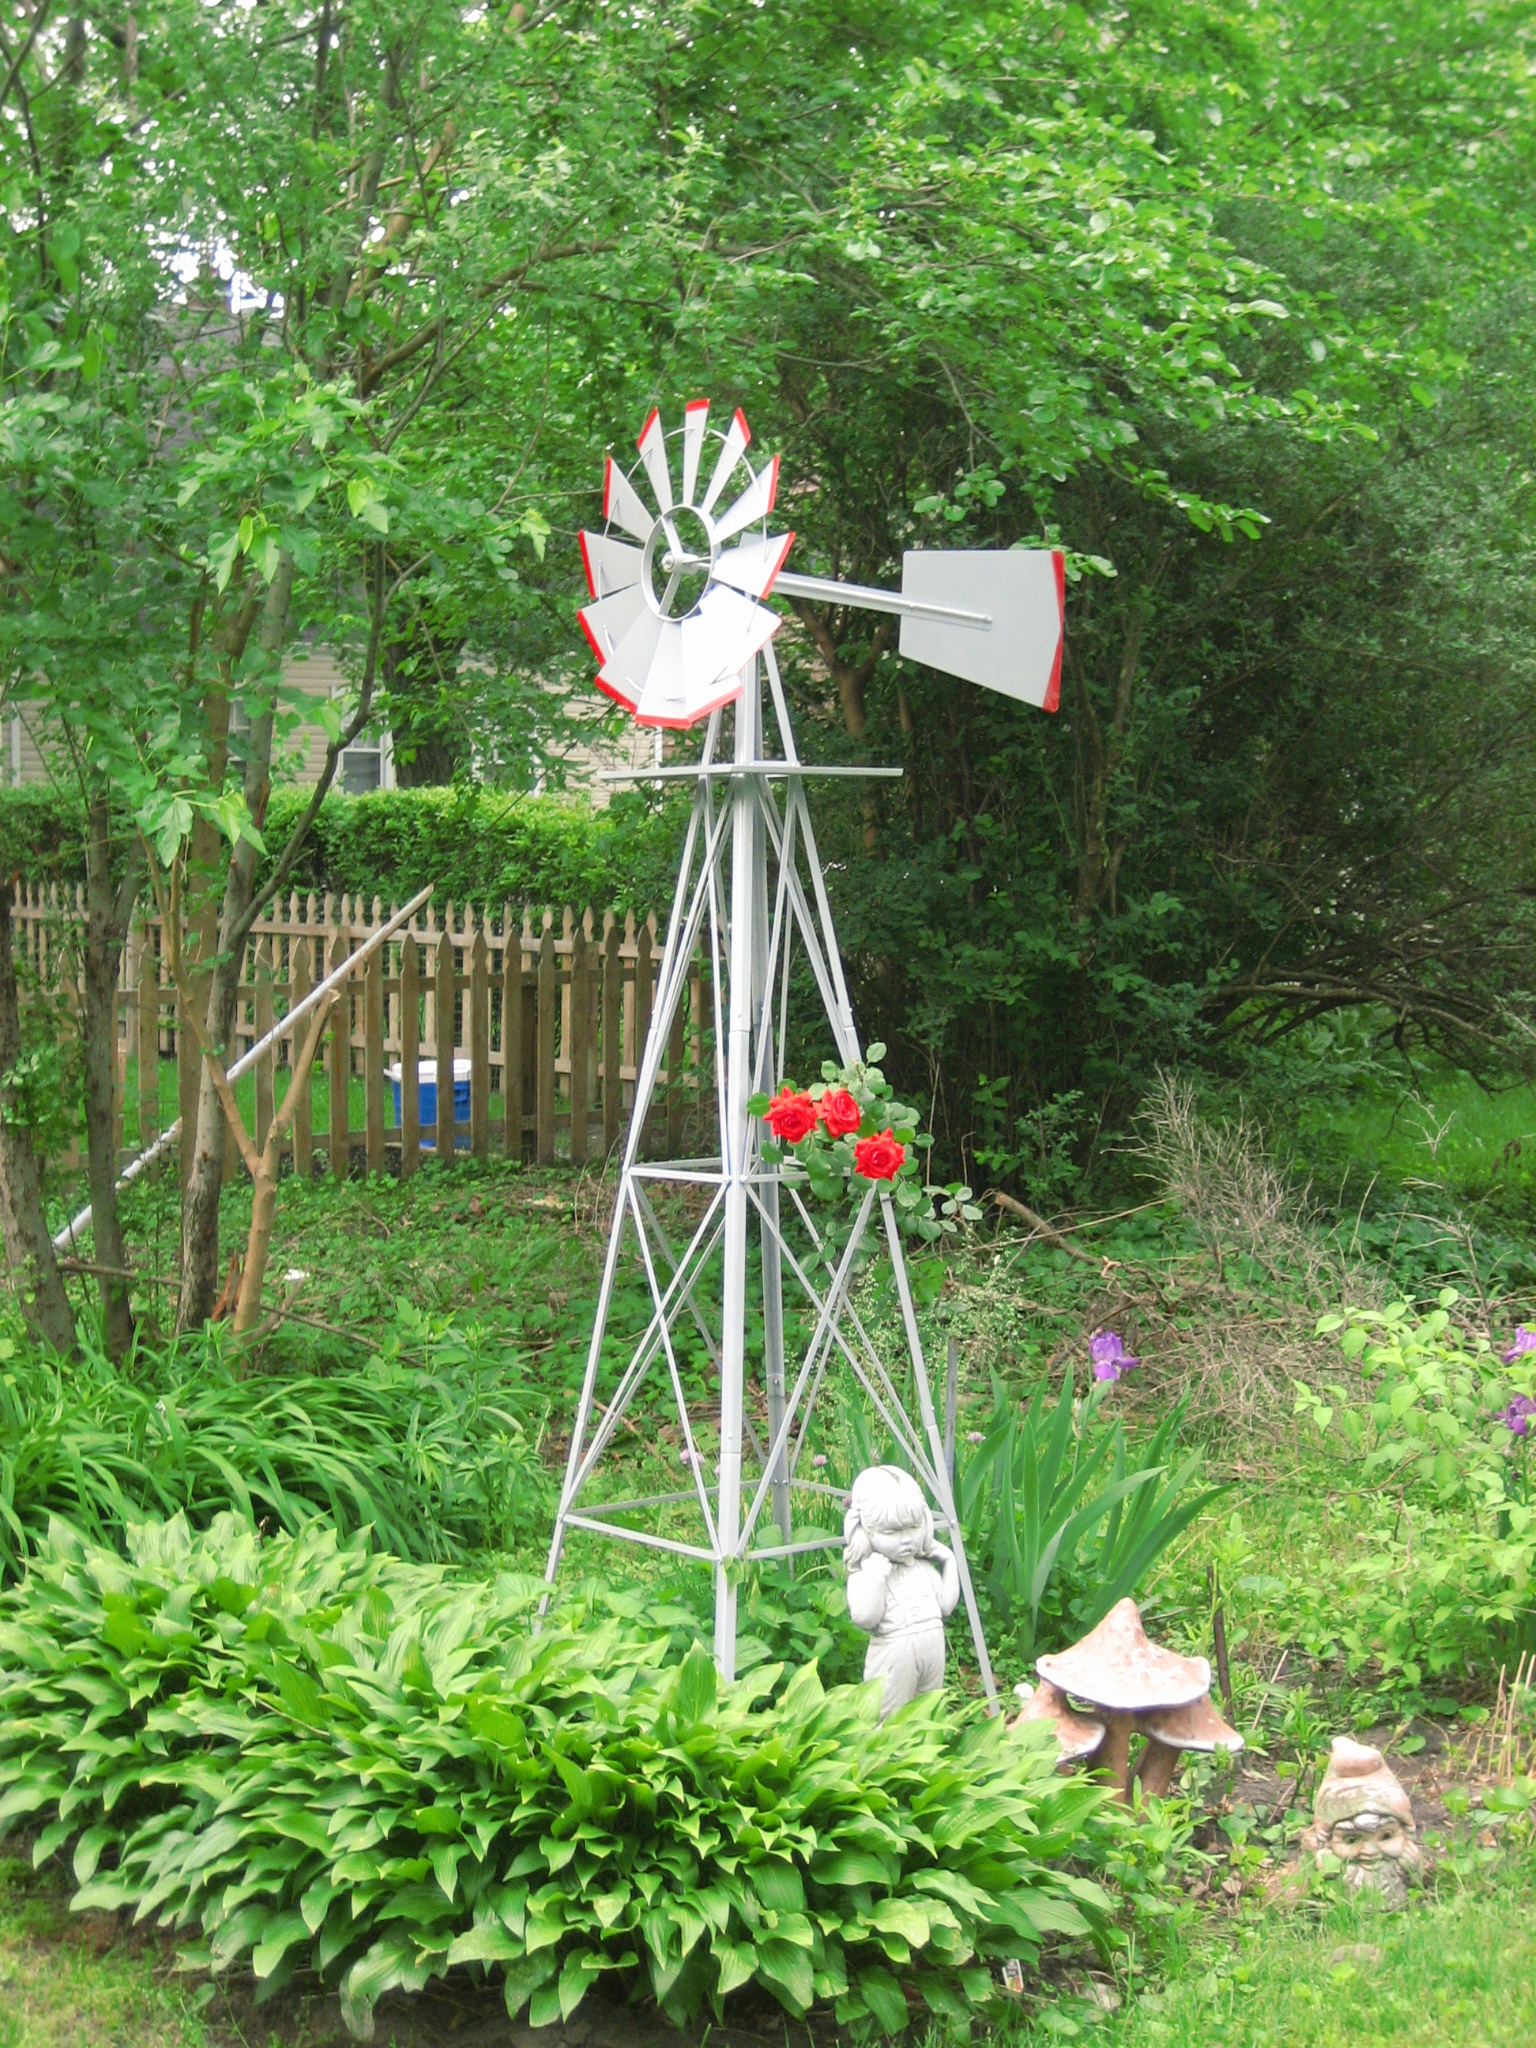 Thursday, June 01, 2006 a picture of roses and windmill